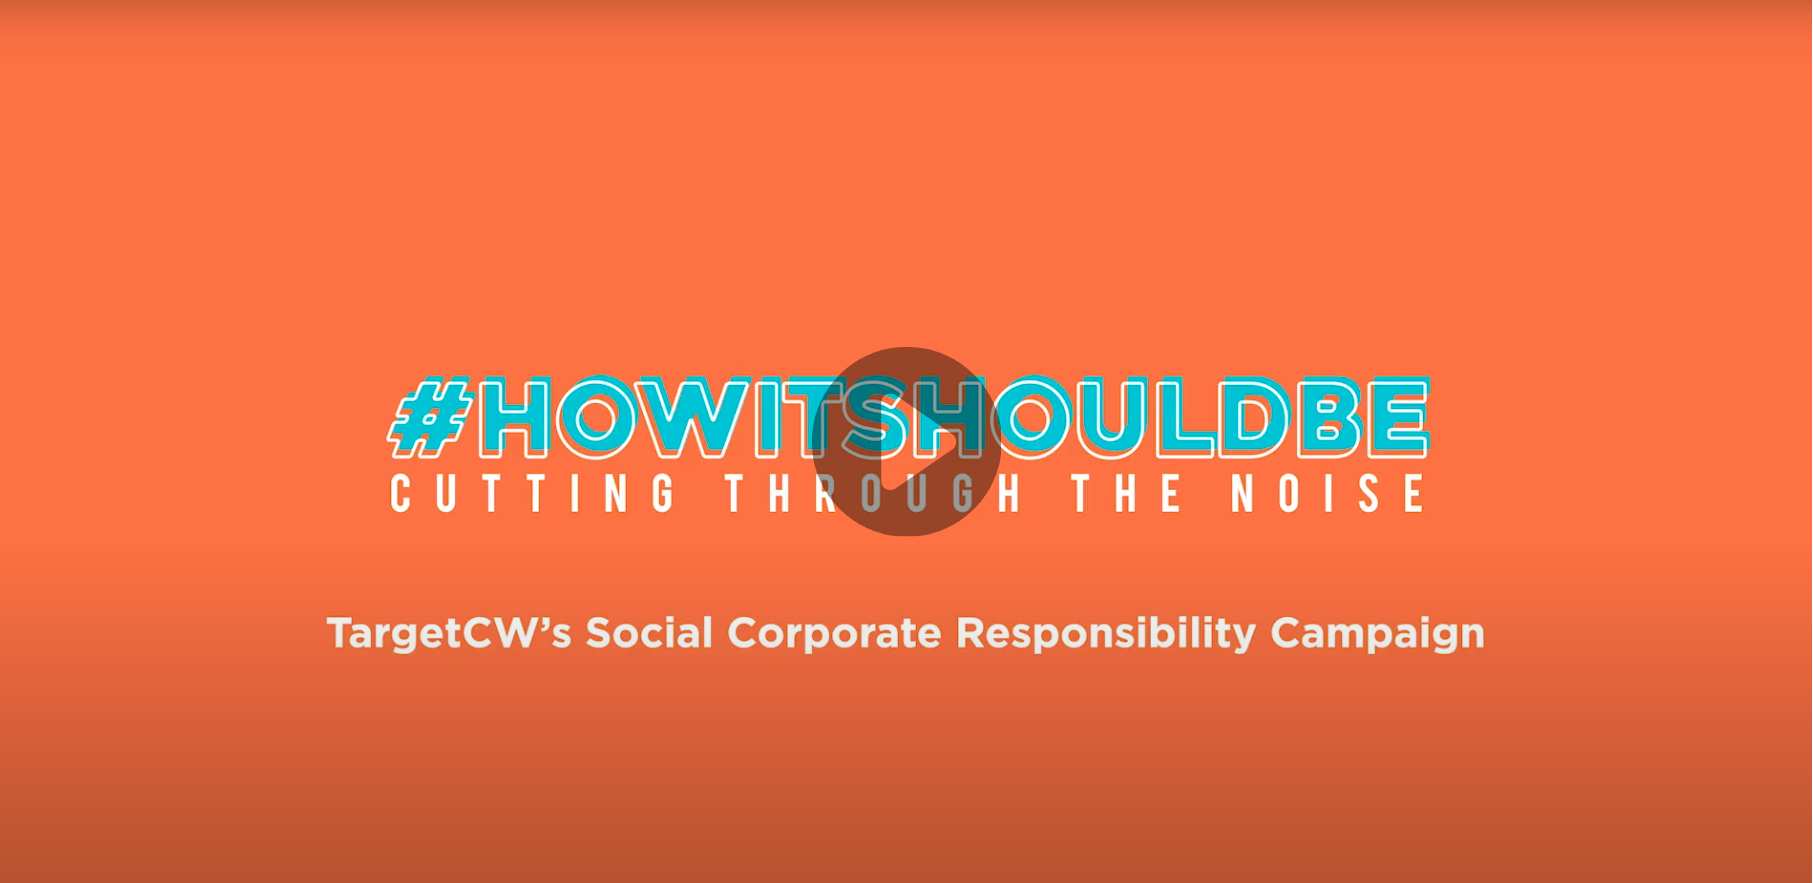 Stevie Award, TargetCW wins a Stevie® Award for Corporate Social Responsibility Program of the Year